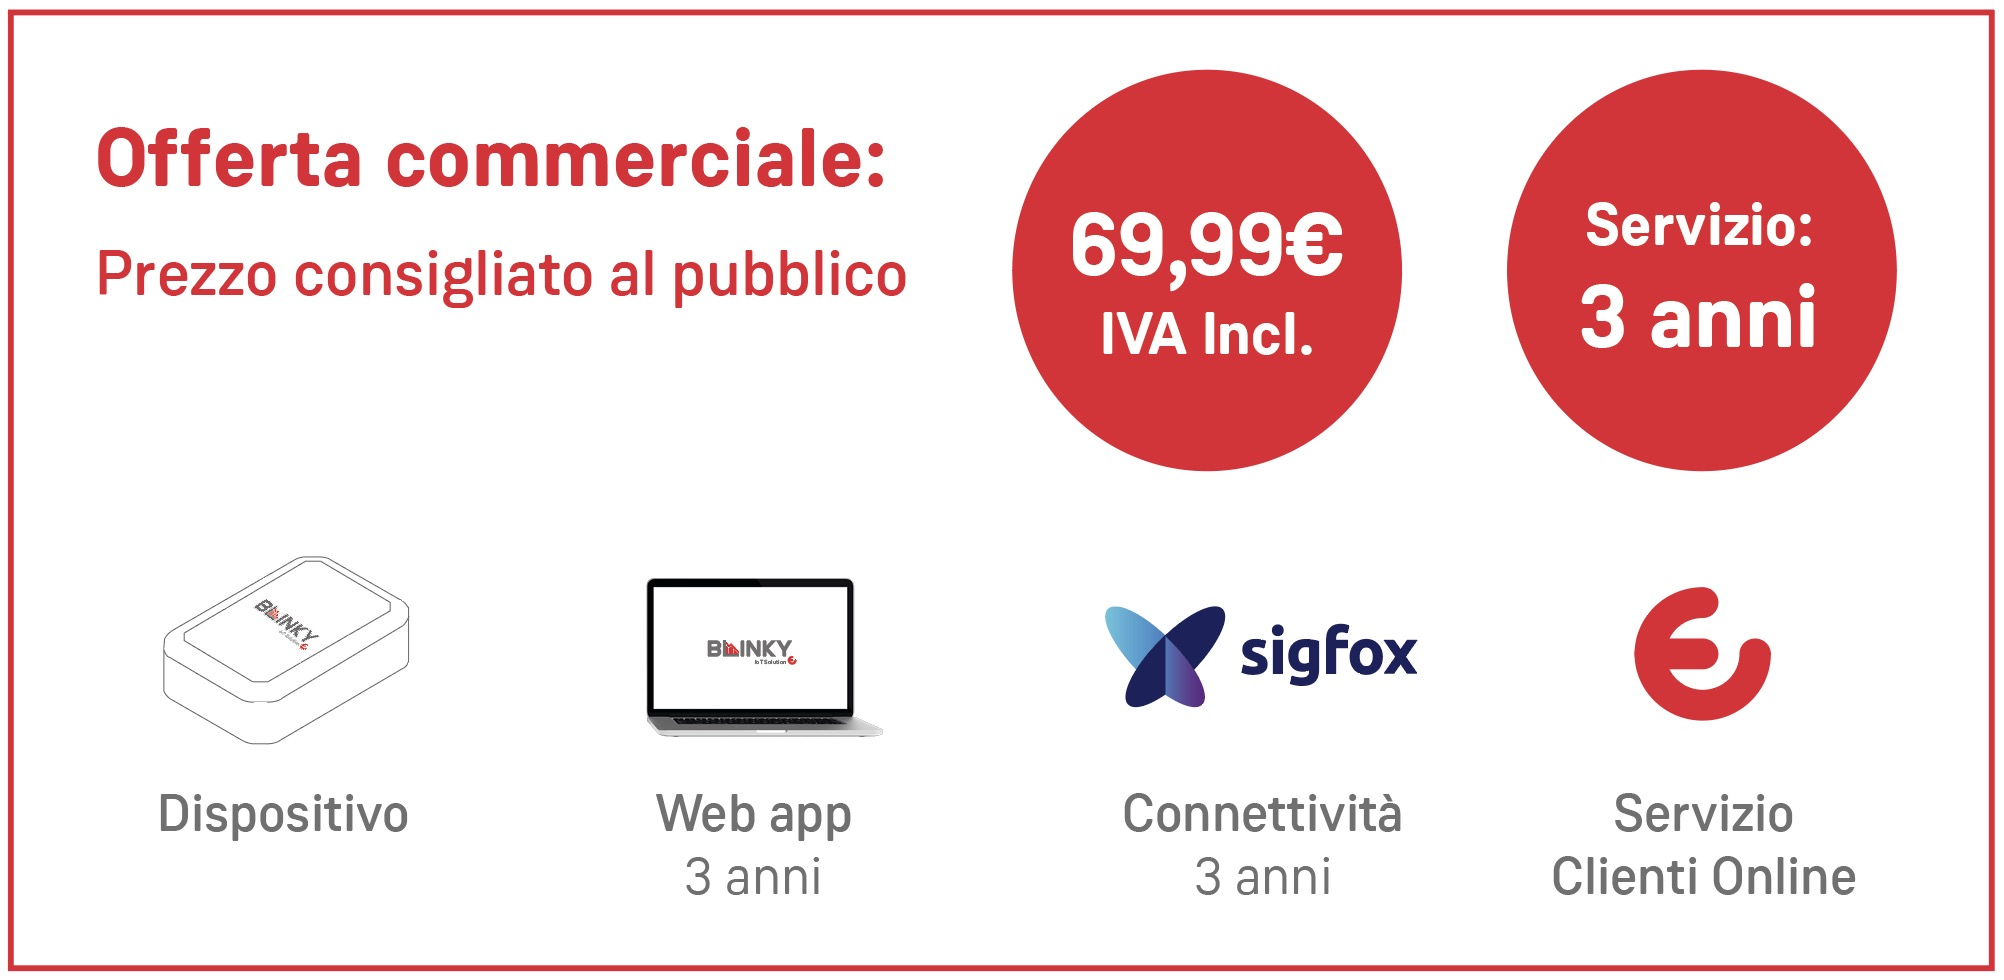 blinky offerta commerciale